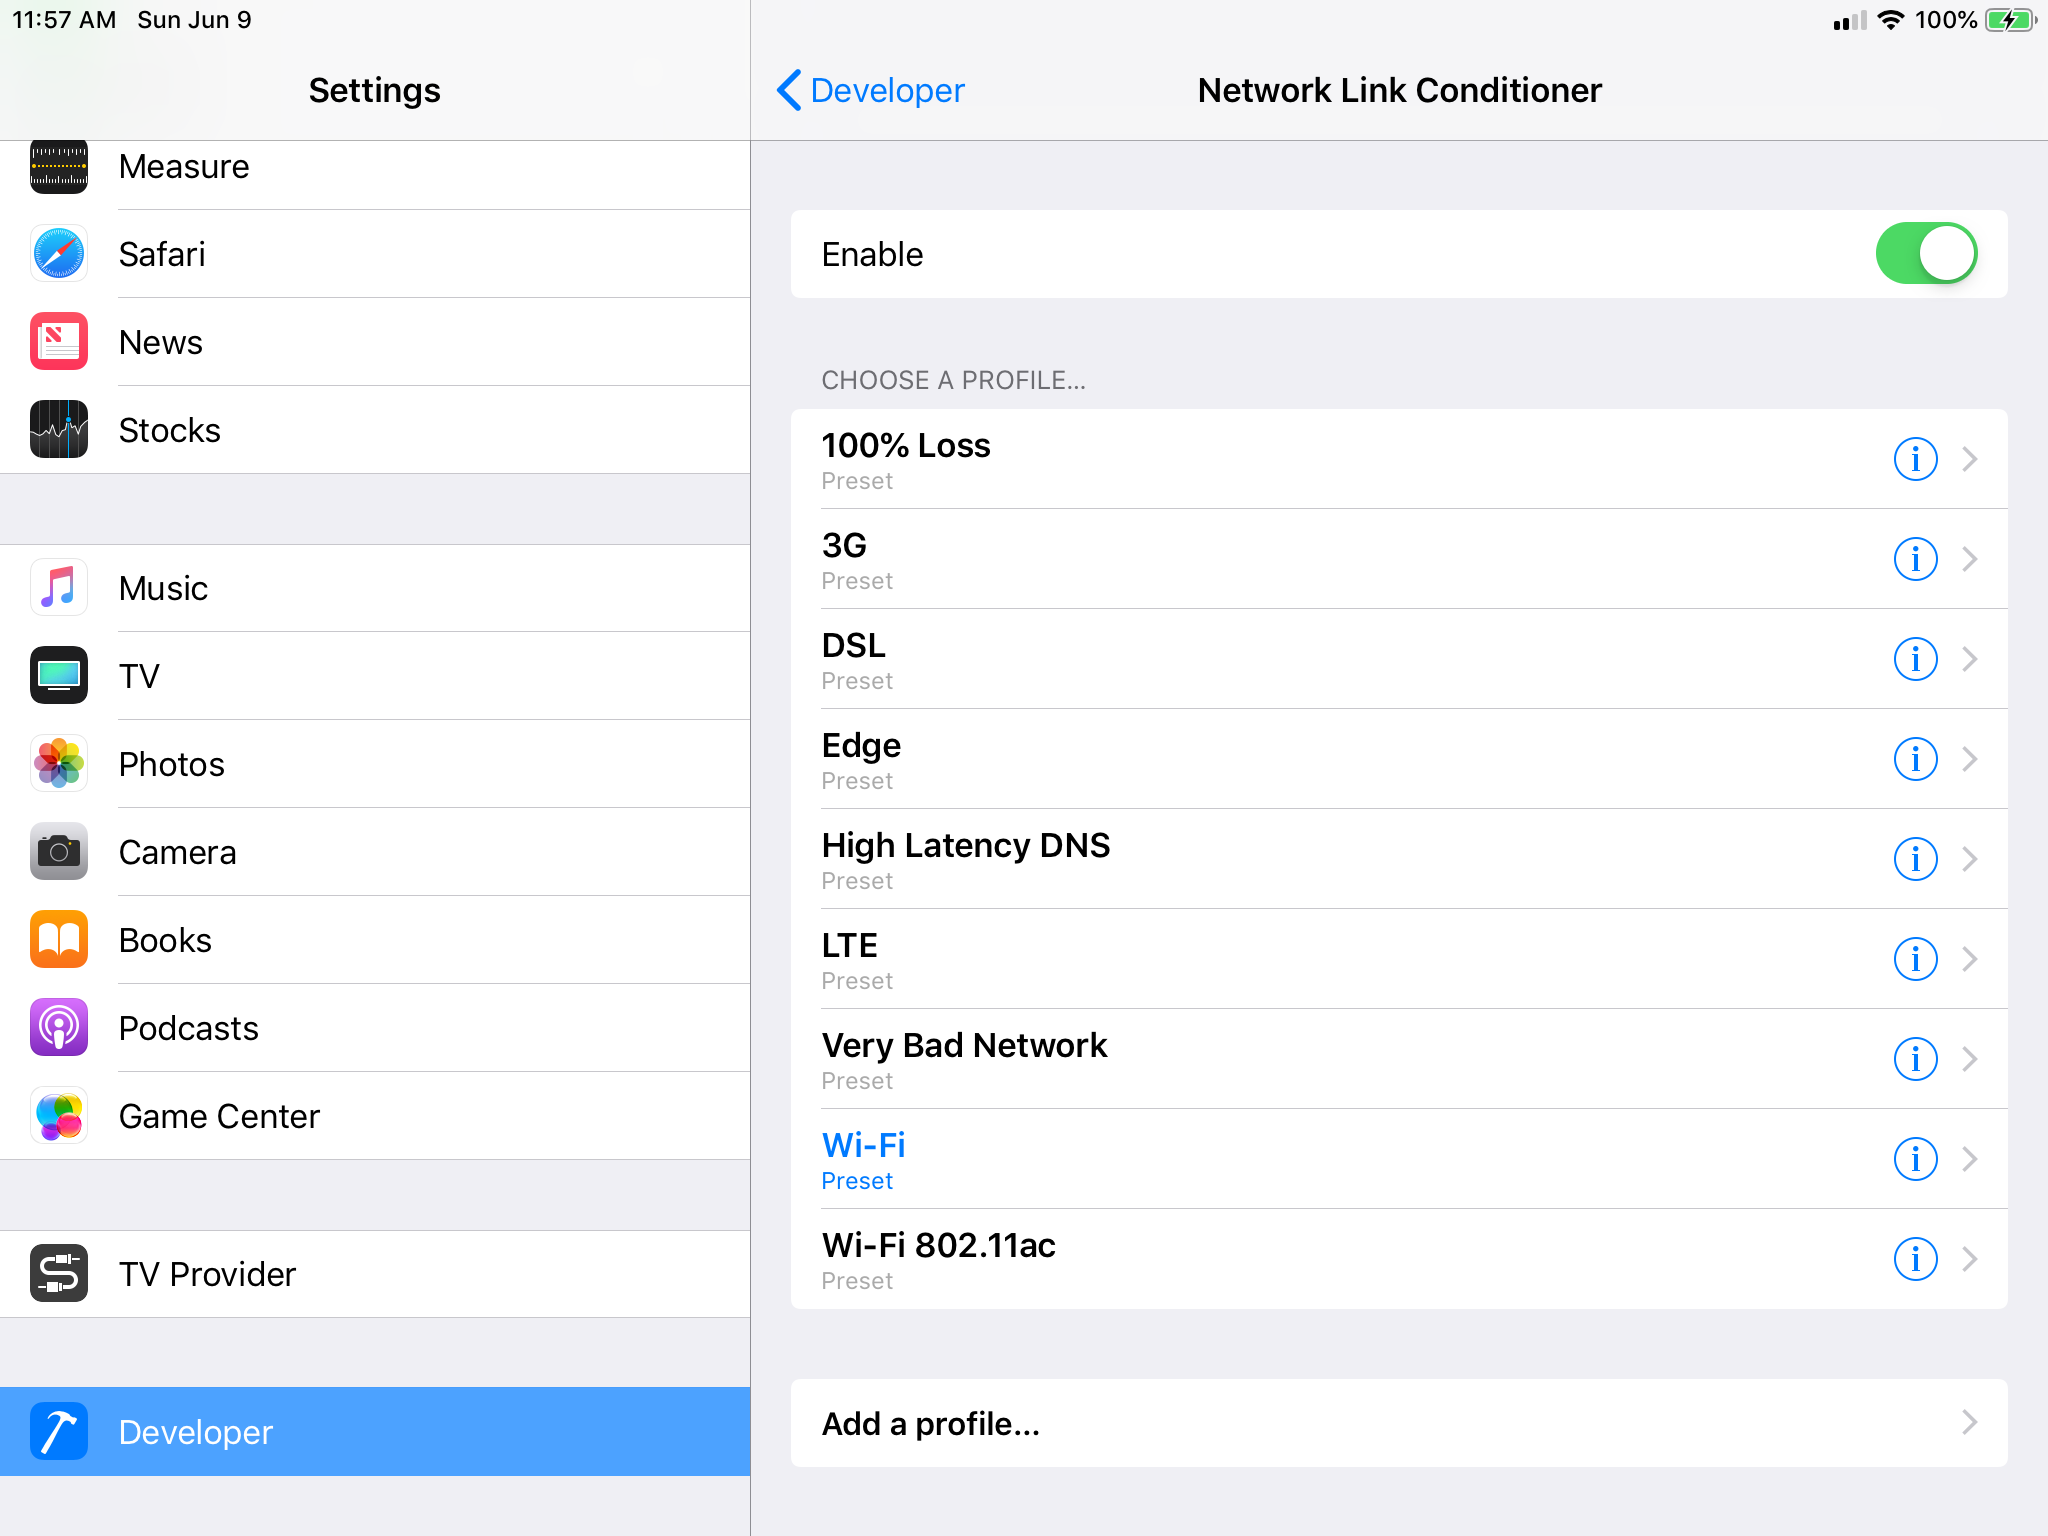 How to test with the Network Link Conditioner in Xcode 11